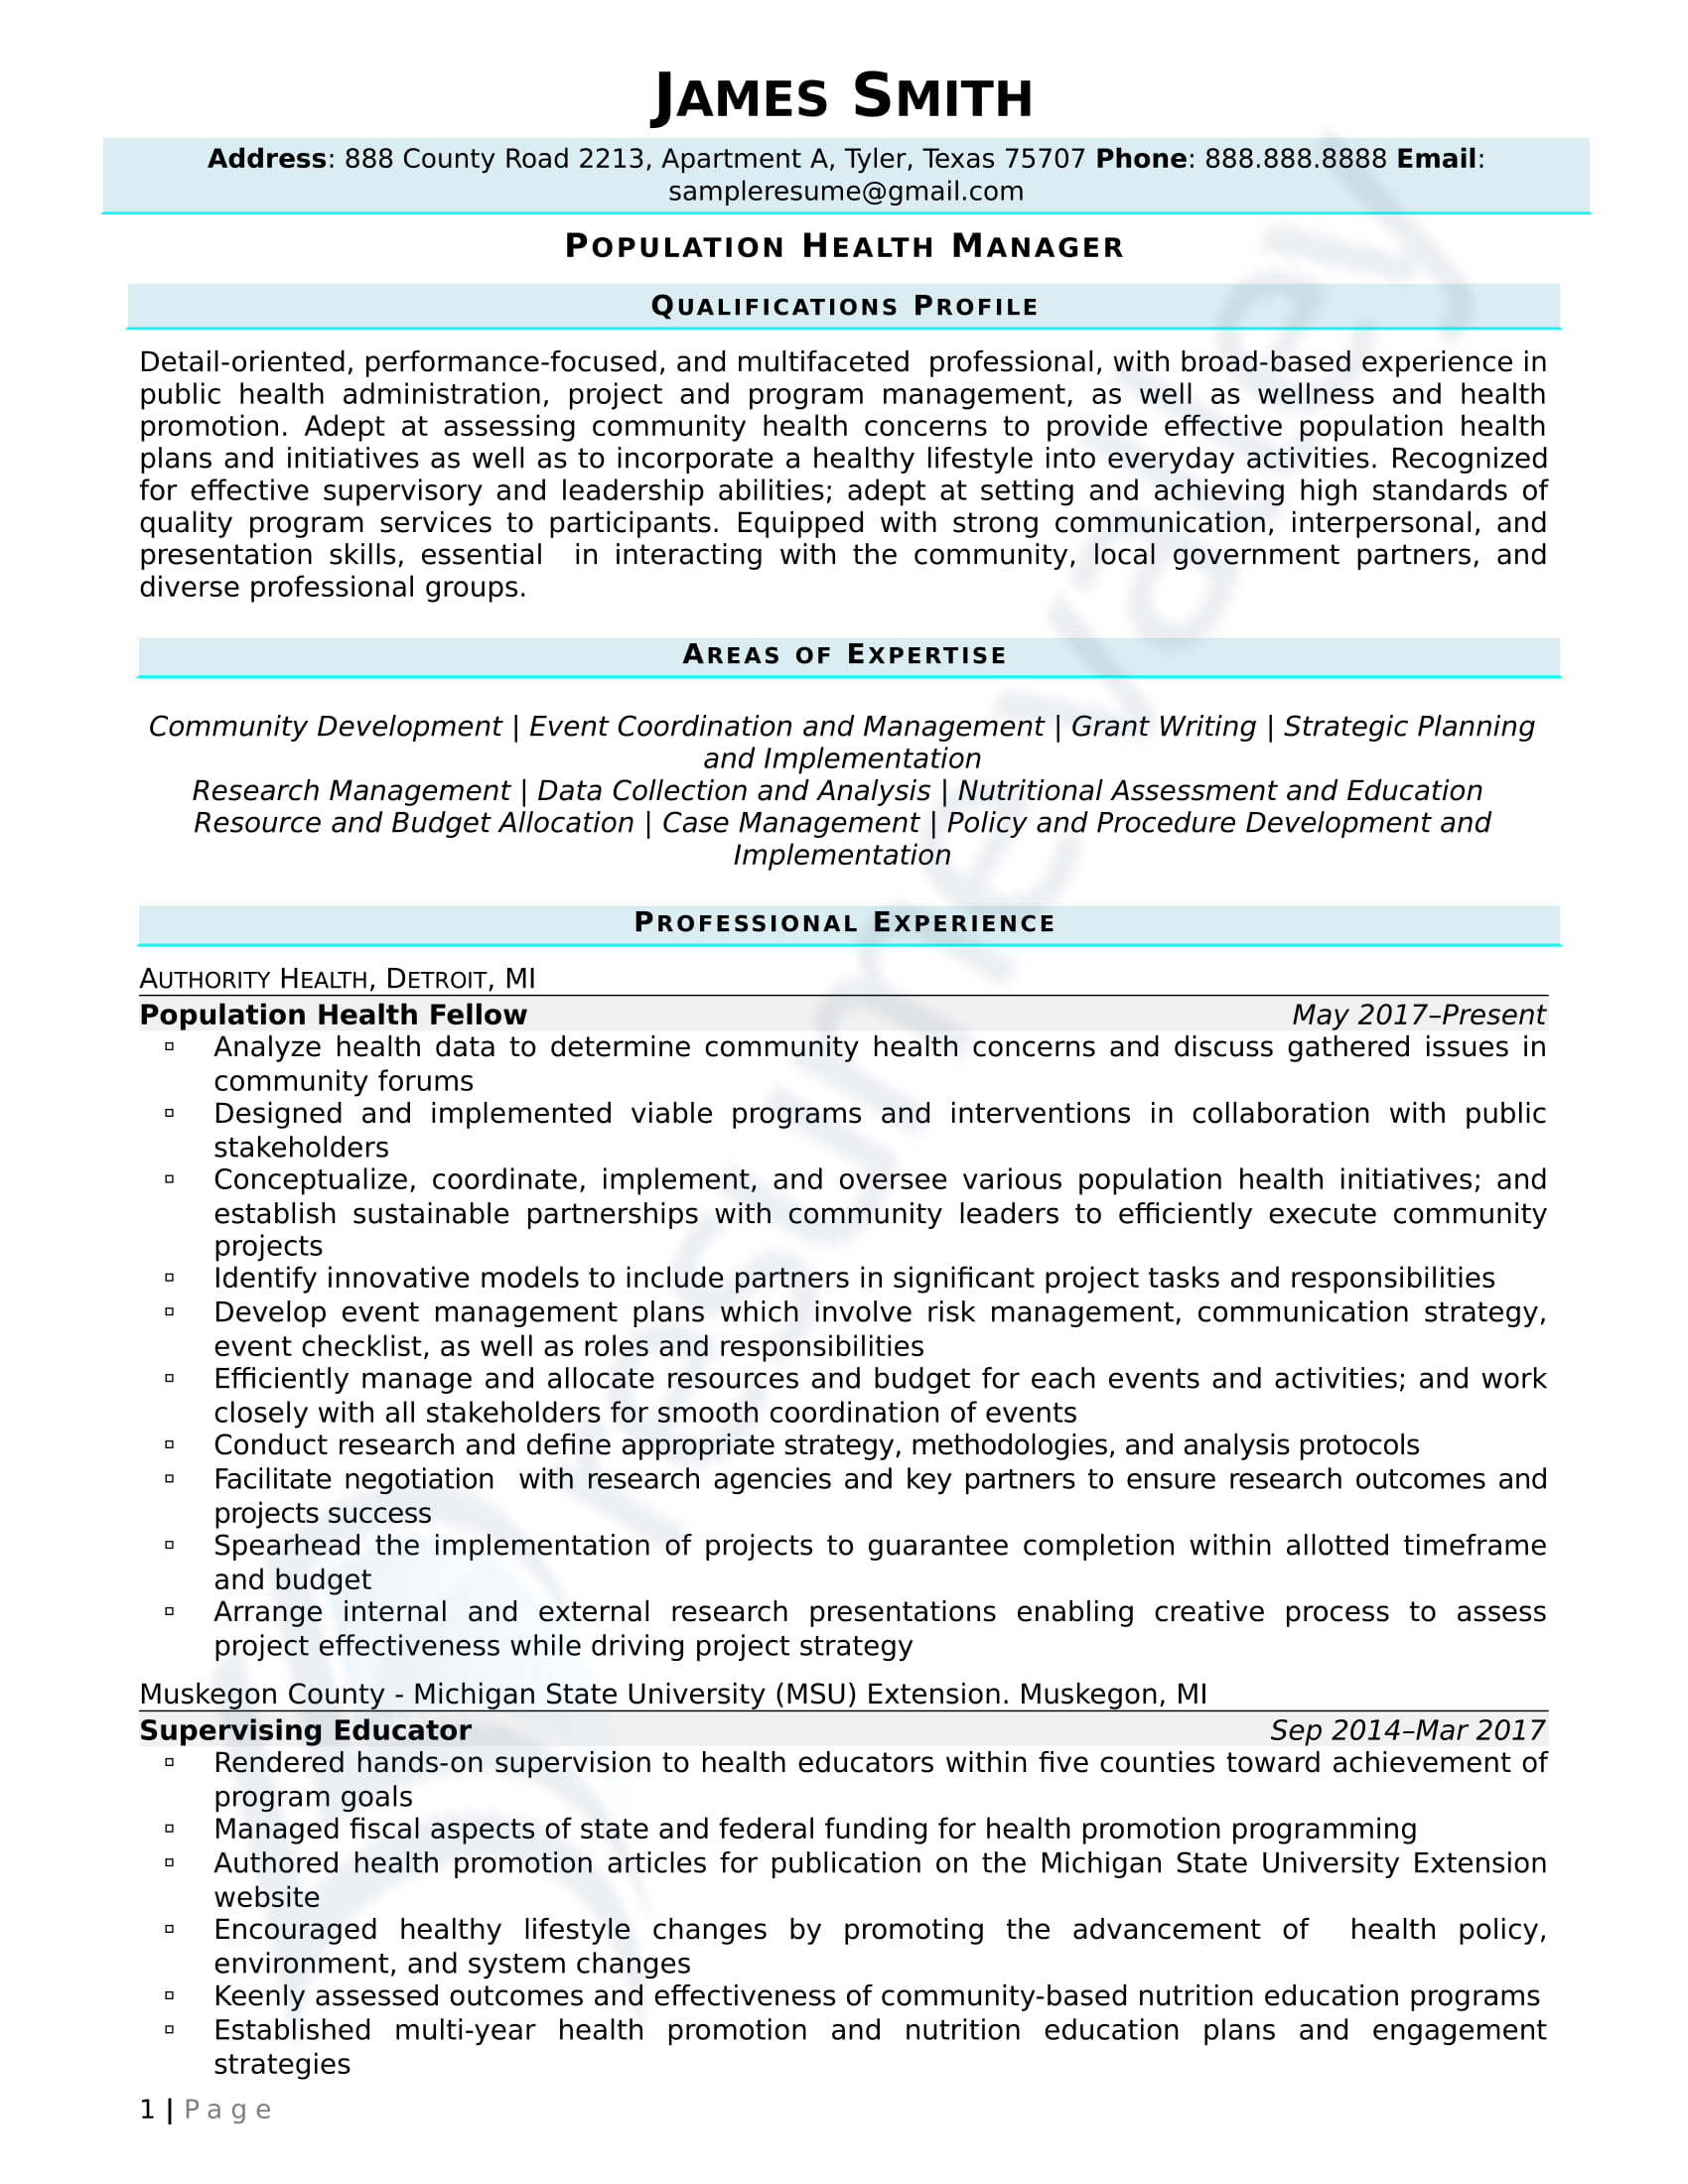 Population Health Manager_Civilian Resume